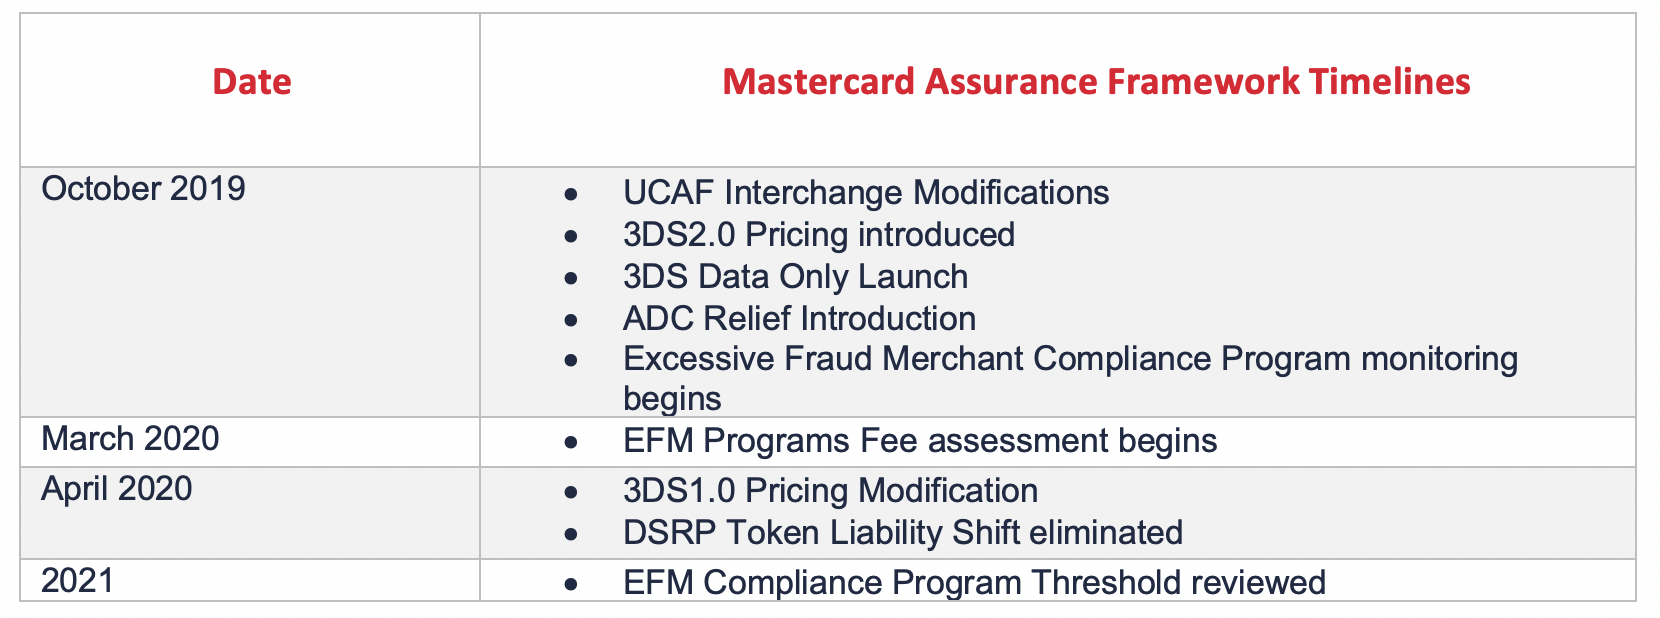 table showing matercard's assurance framework timelines